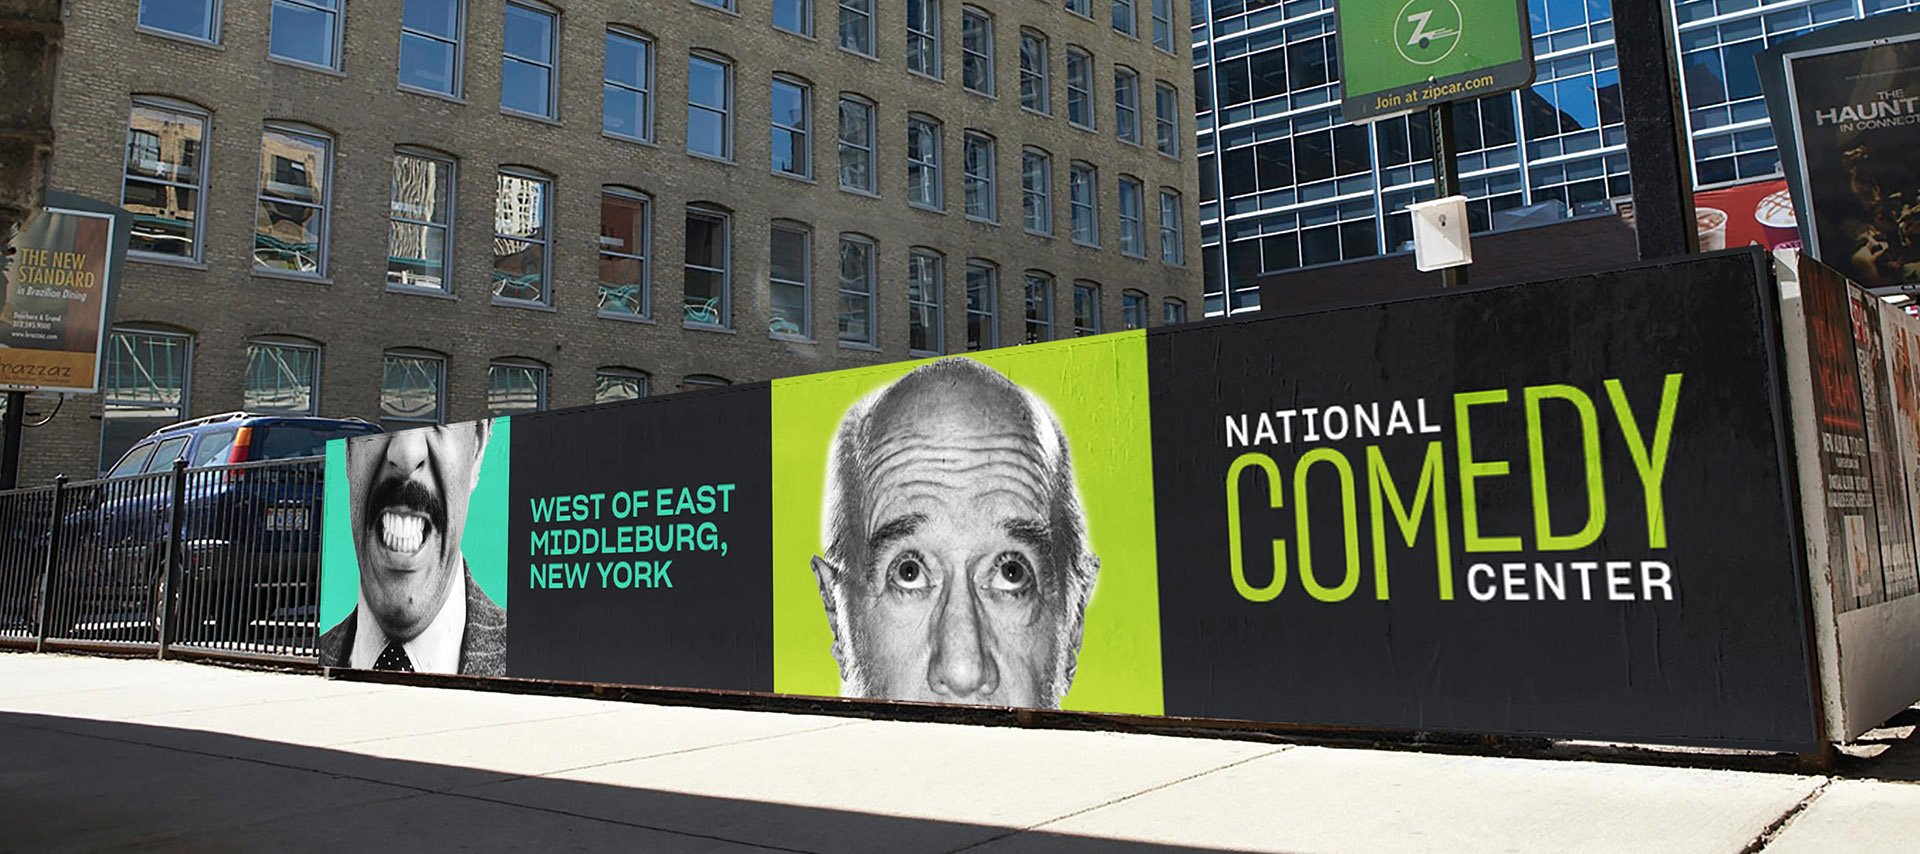 National Comedy Center outdoor campaign advertising